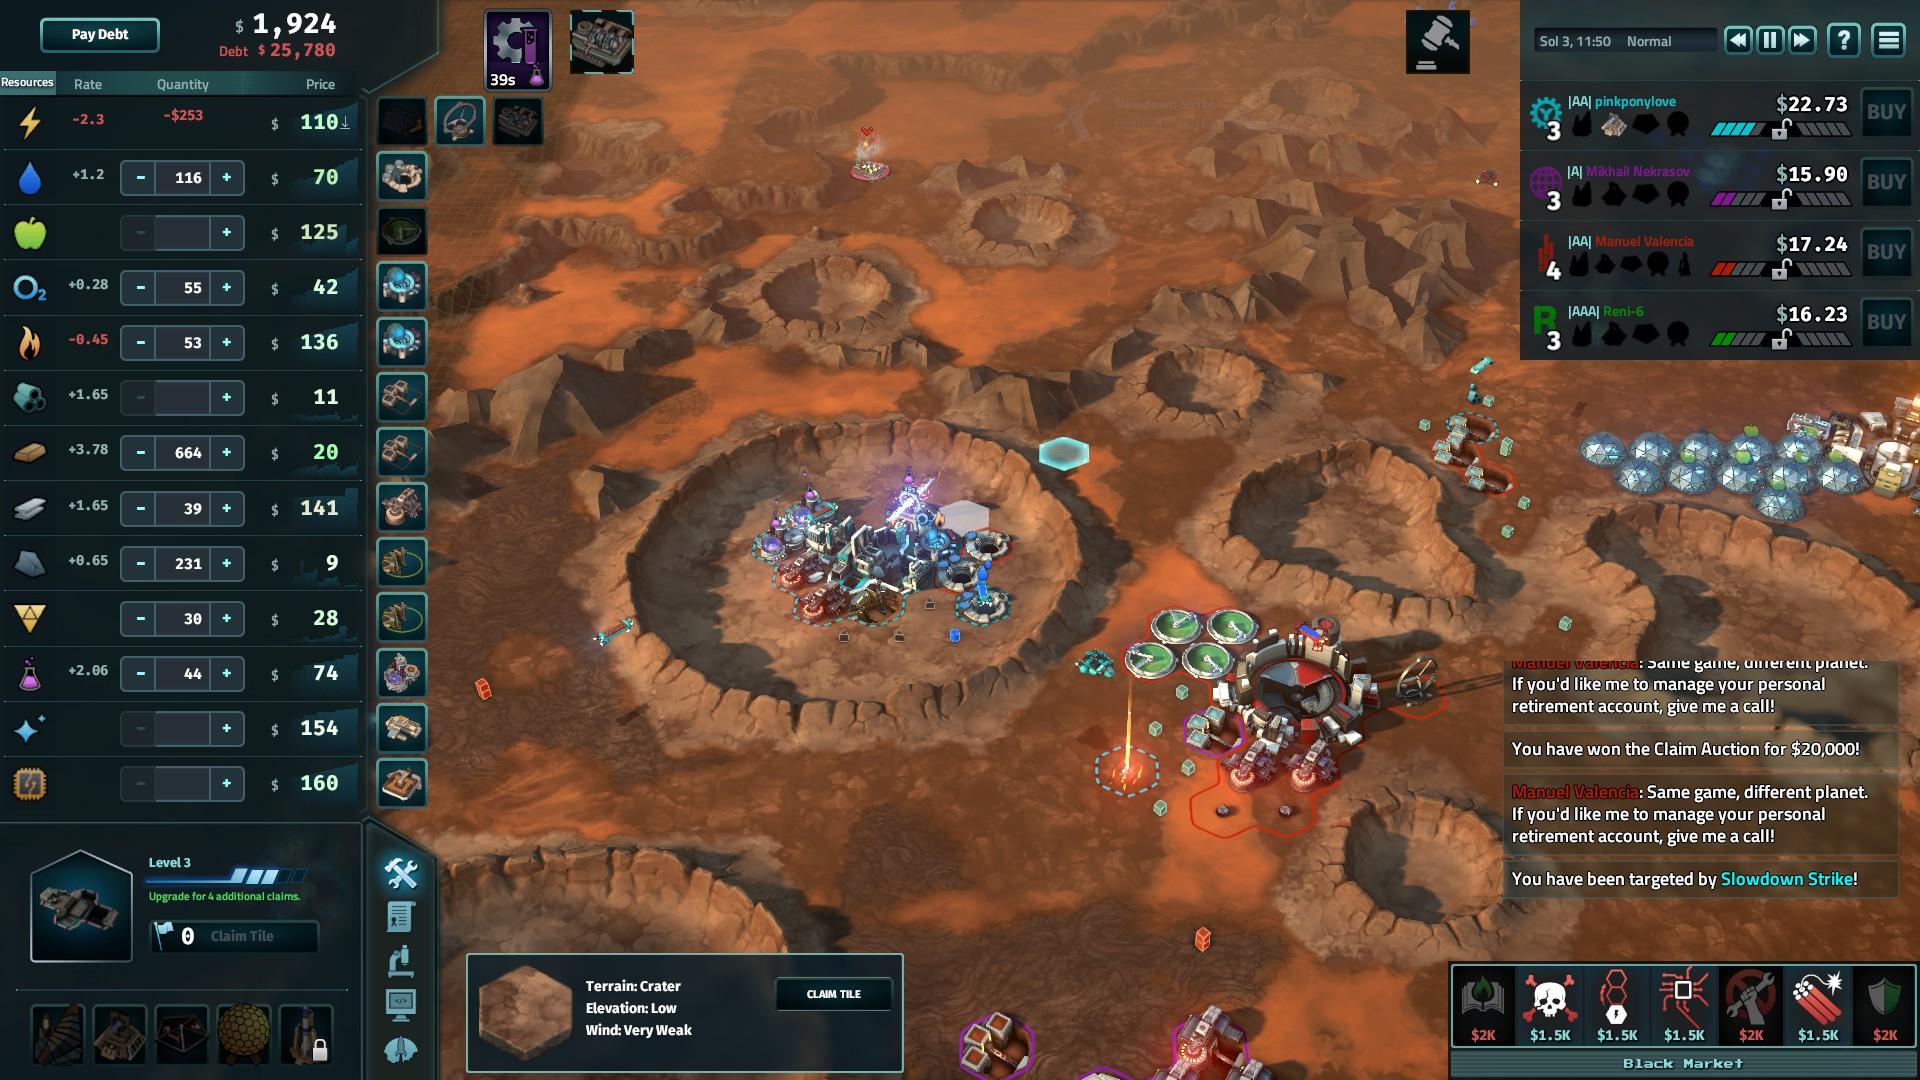 Game screenshot.